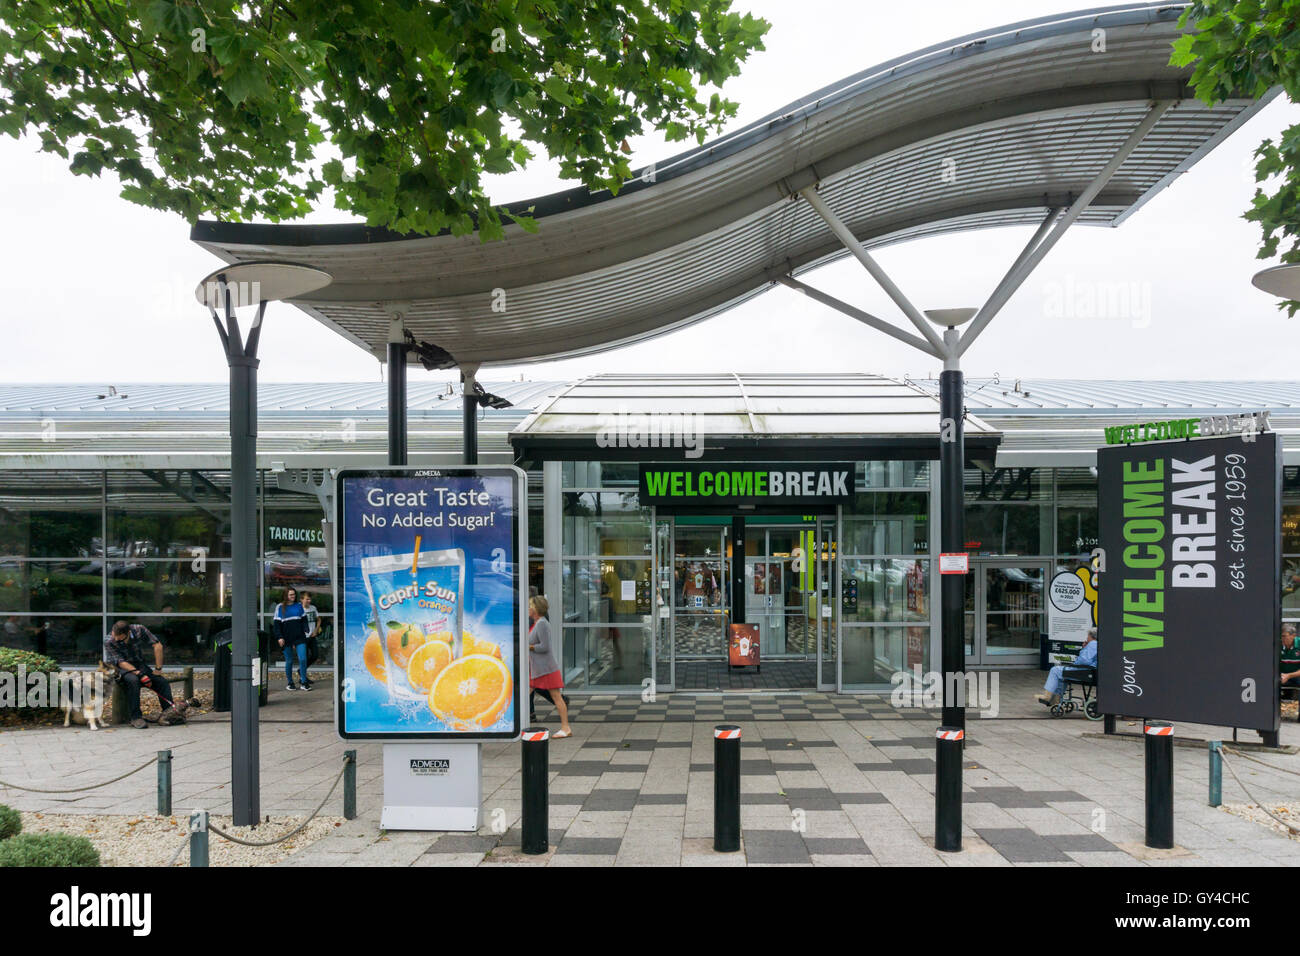 Welcome Break services at South Mimms on the M25 and A1 motorways. Stock Photo